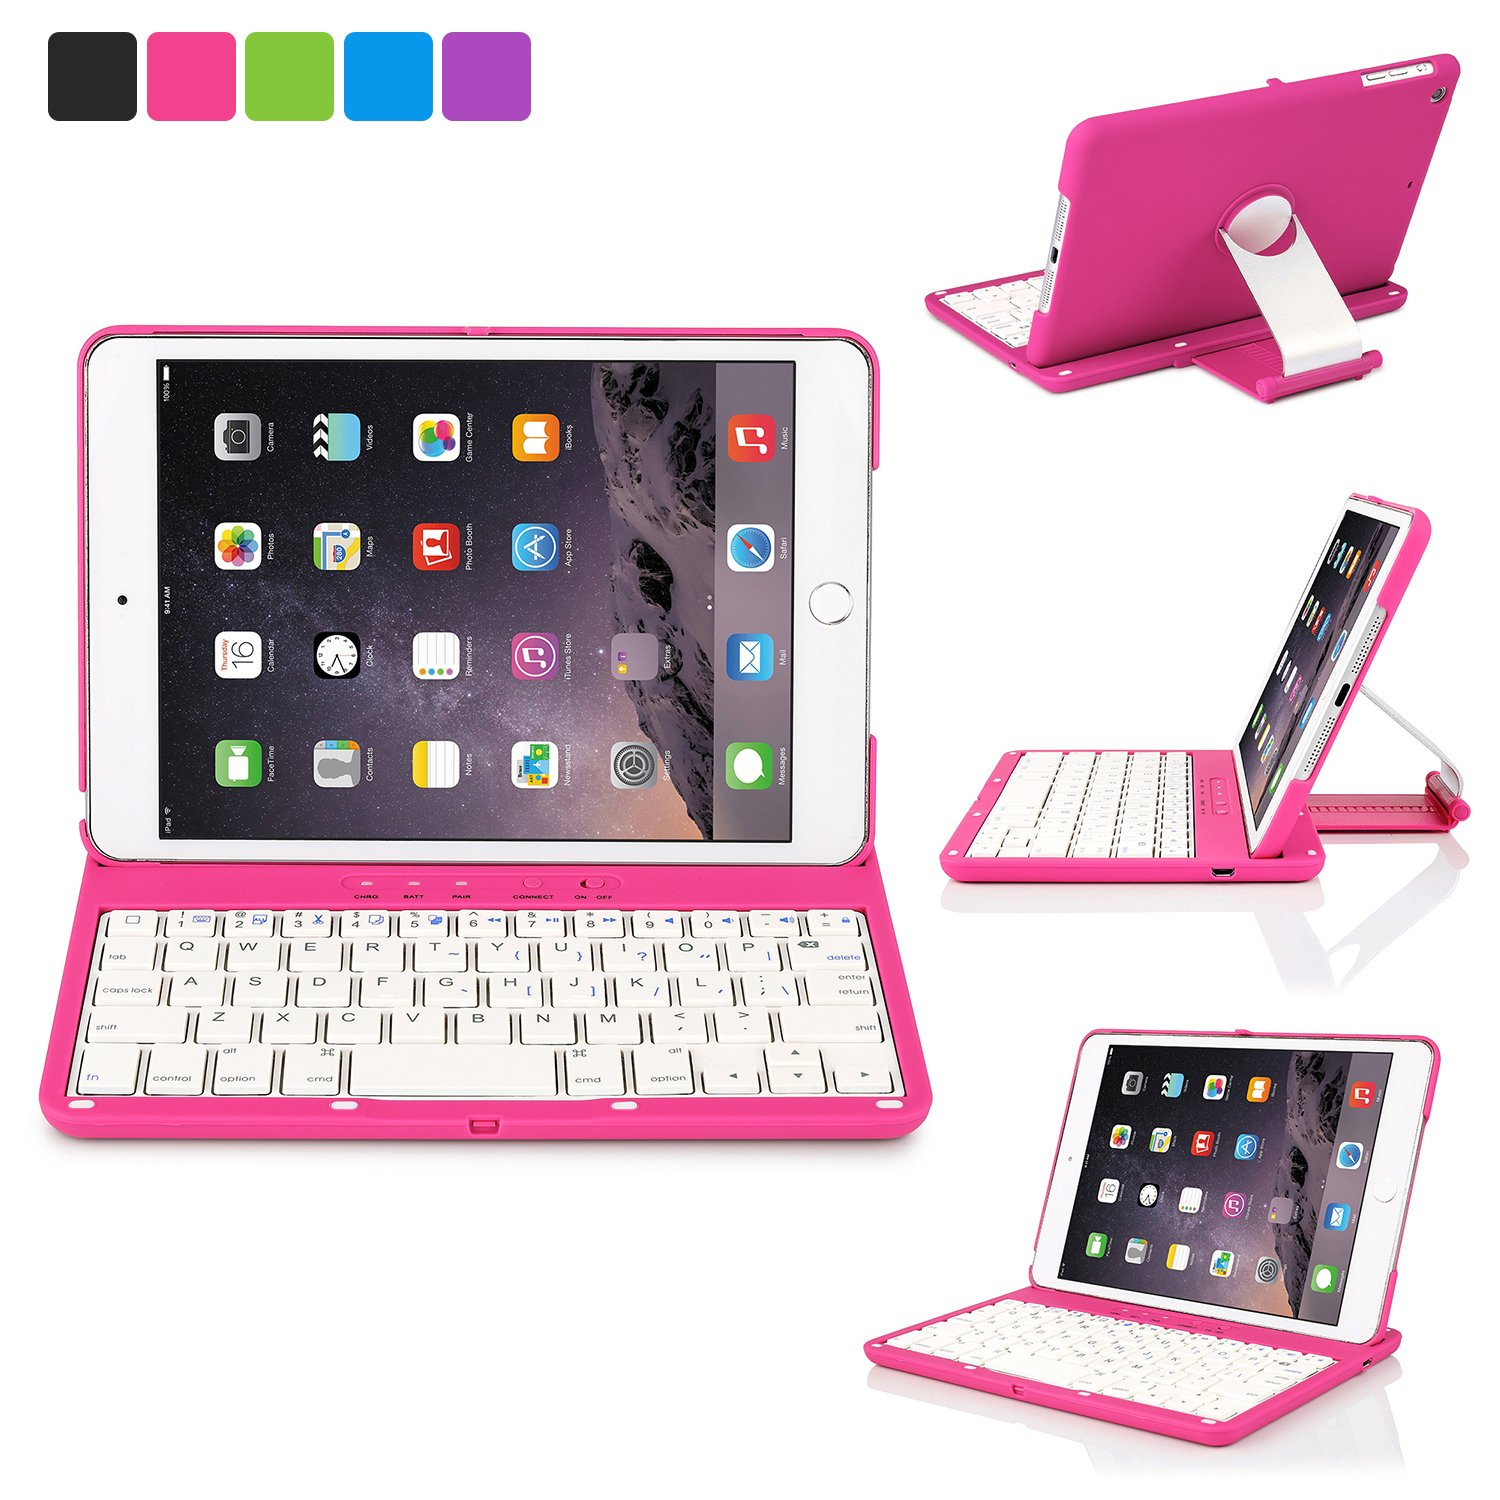 iNNEXT Aluminum 360 Swivel Rotating Stand Case Cover Built-in Bluetooth Keyboard for ipad Mini 1 2 3 with Retina Display (Hot Pink) by iNNEXT (Image #1)